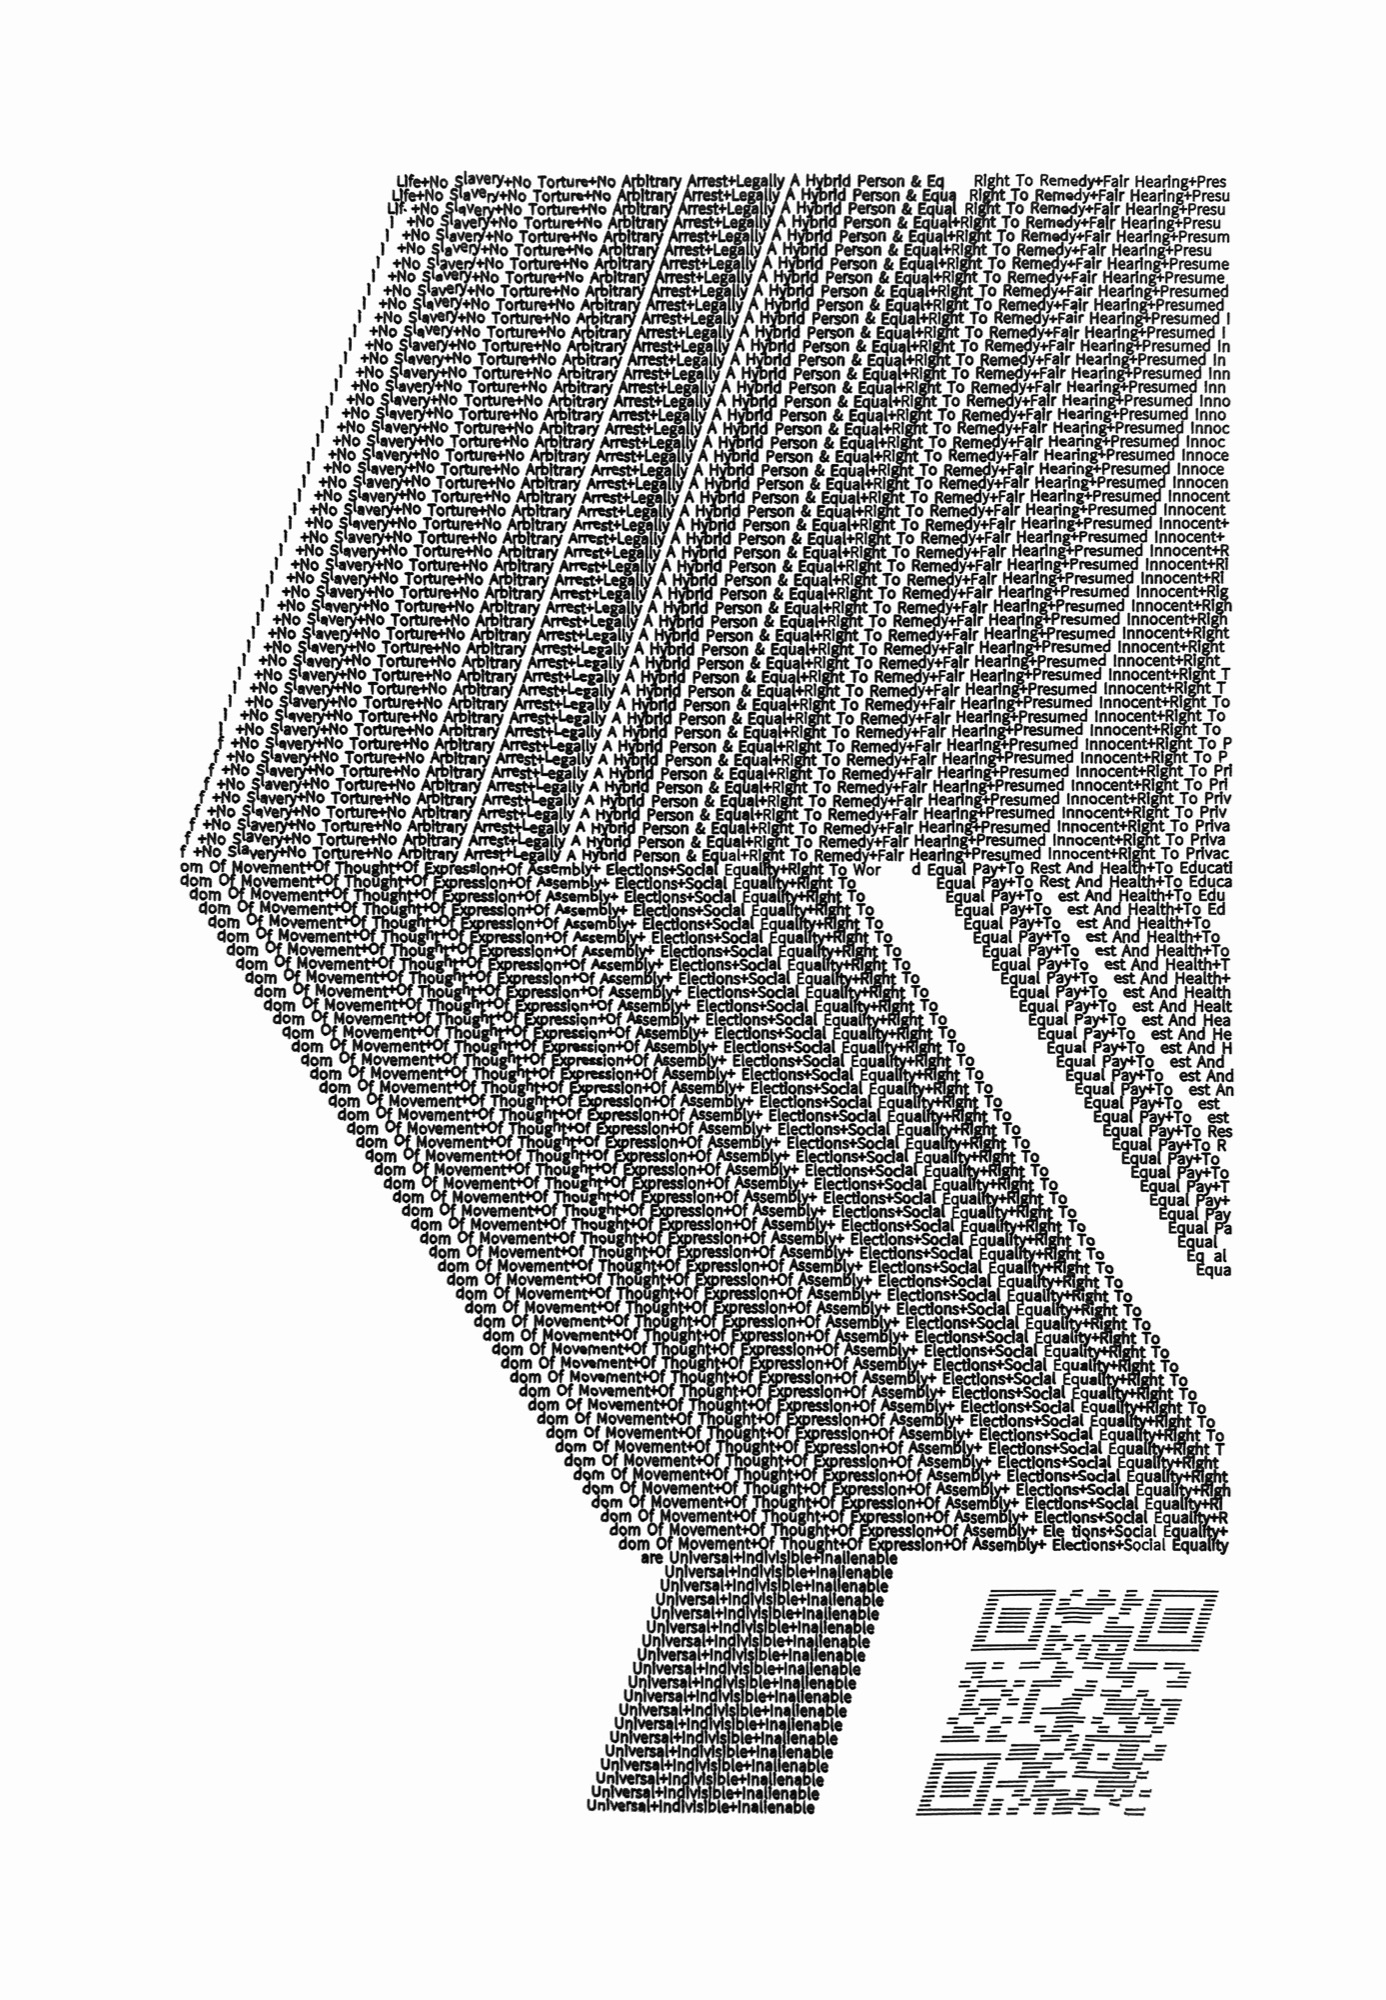 Walter van Rijn (2020) BeingAndroid_text112; Print from drawing ink on paper; 300x420mm; hybrid human robotic drawing.